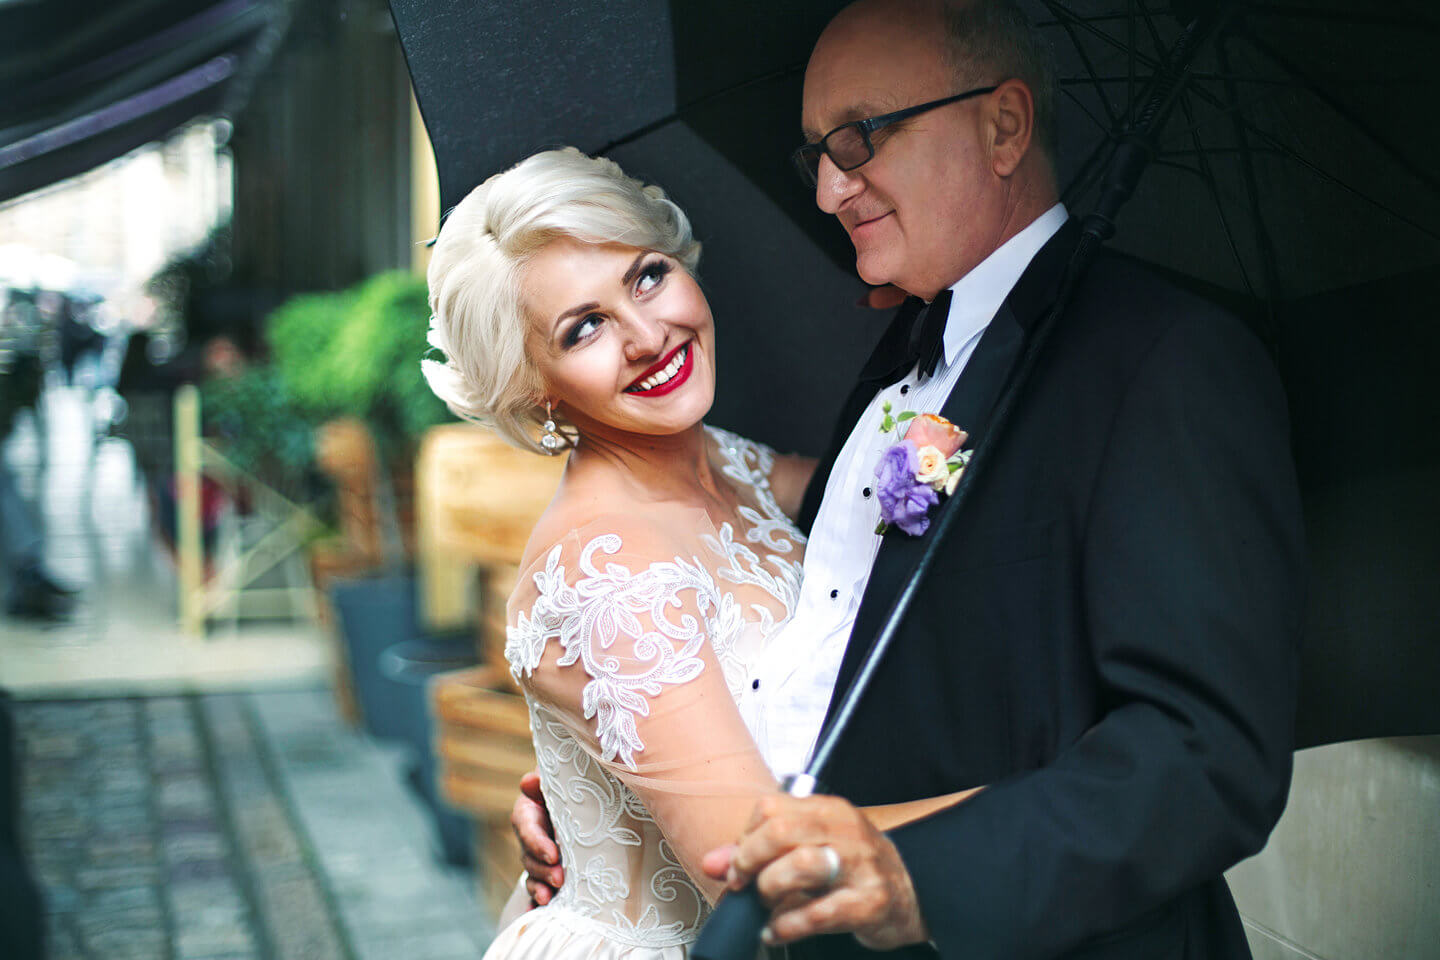 How To Take Great Wedding Pictures For Older Couples